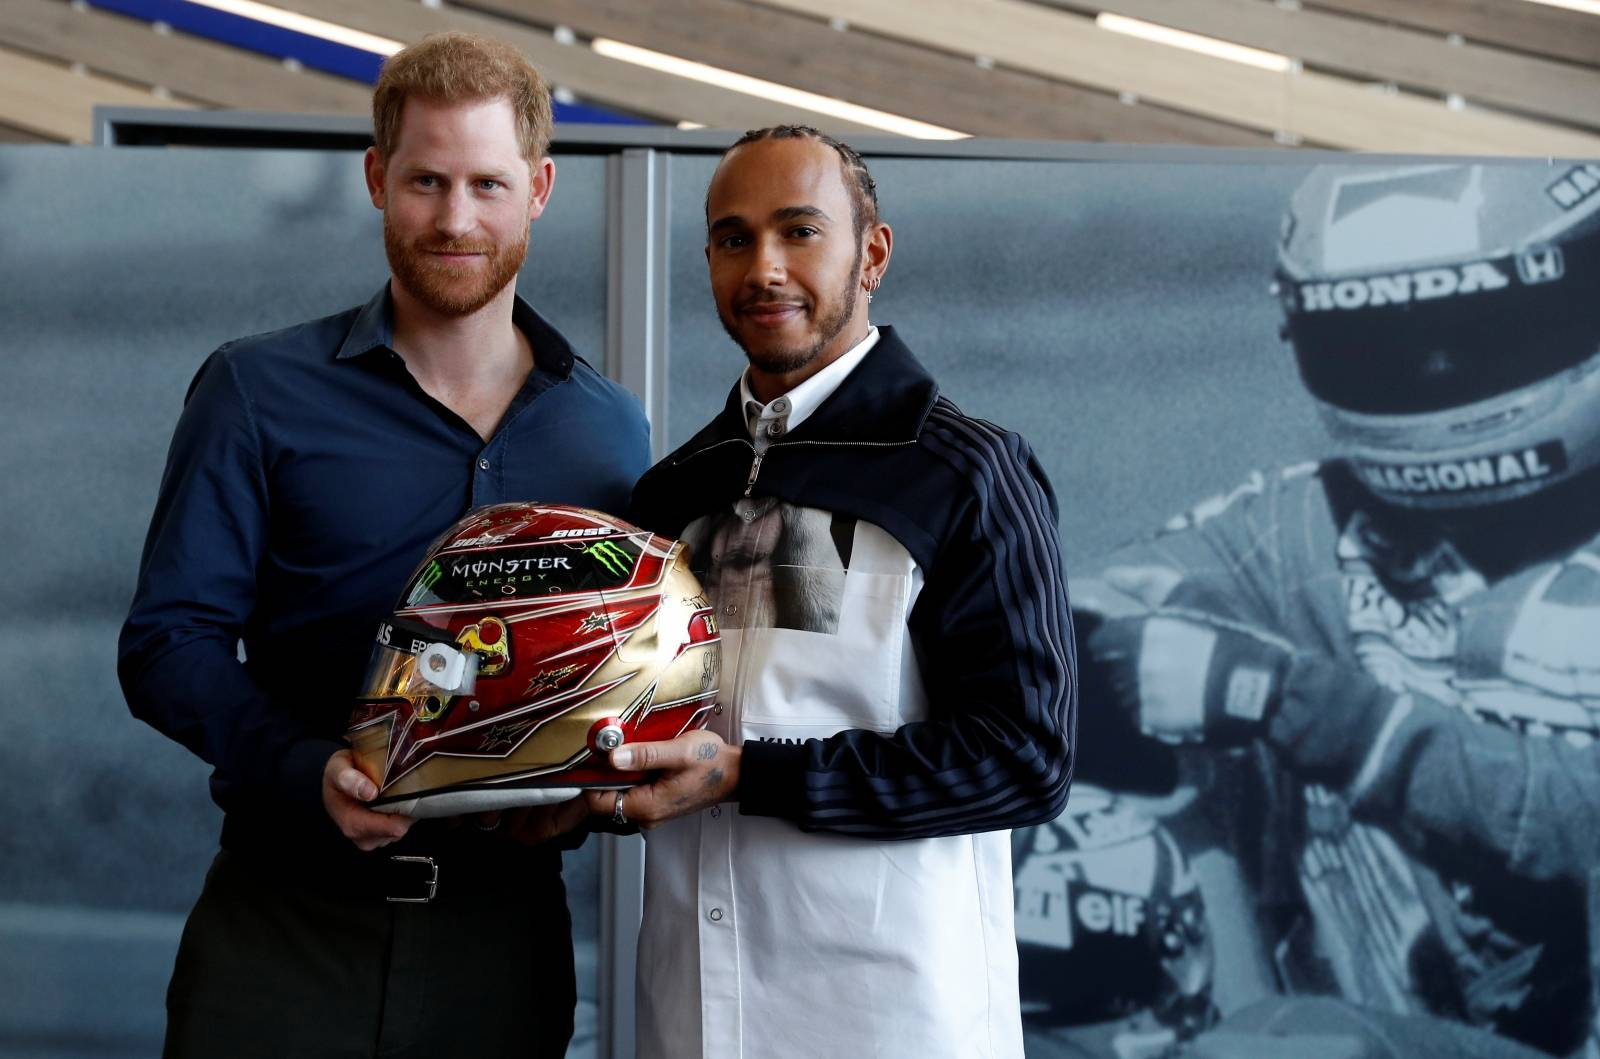 Britain's Prince Harry and Formula One World Champion Lewis Hamilton pose with one of Hamilton's helmet as they visit the Silverstone Experience at Silverstone circuit, in Towcester